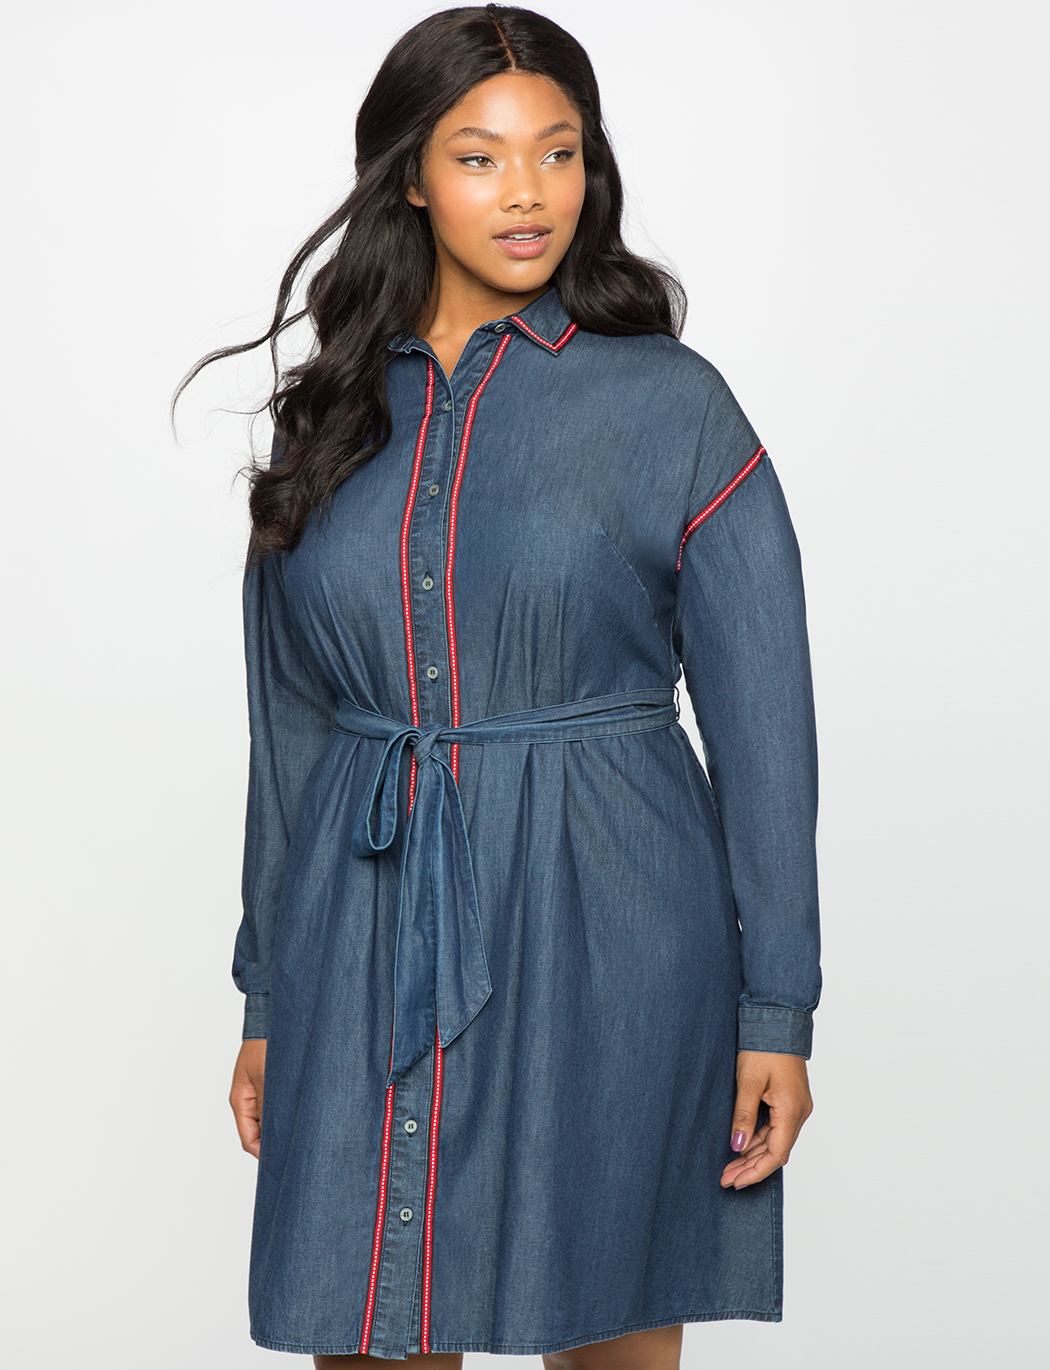 Dolman Sleeve Chambray Shirt Dress | Women\'s Plus Size Dresses ...